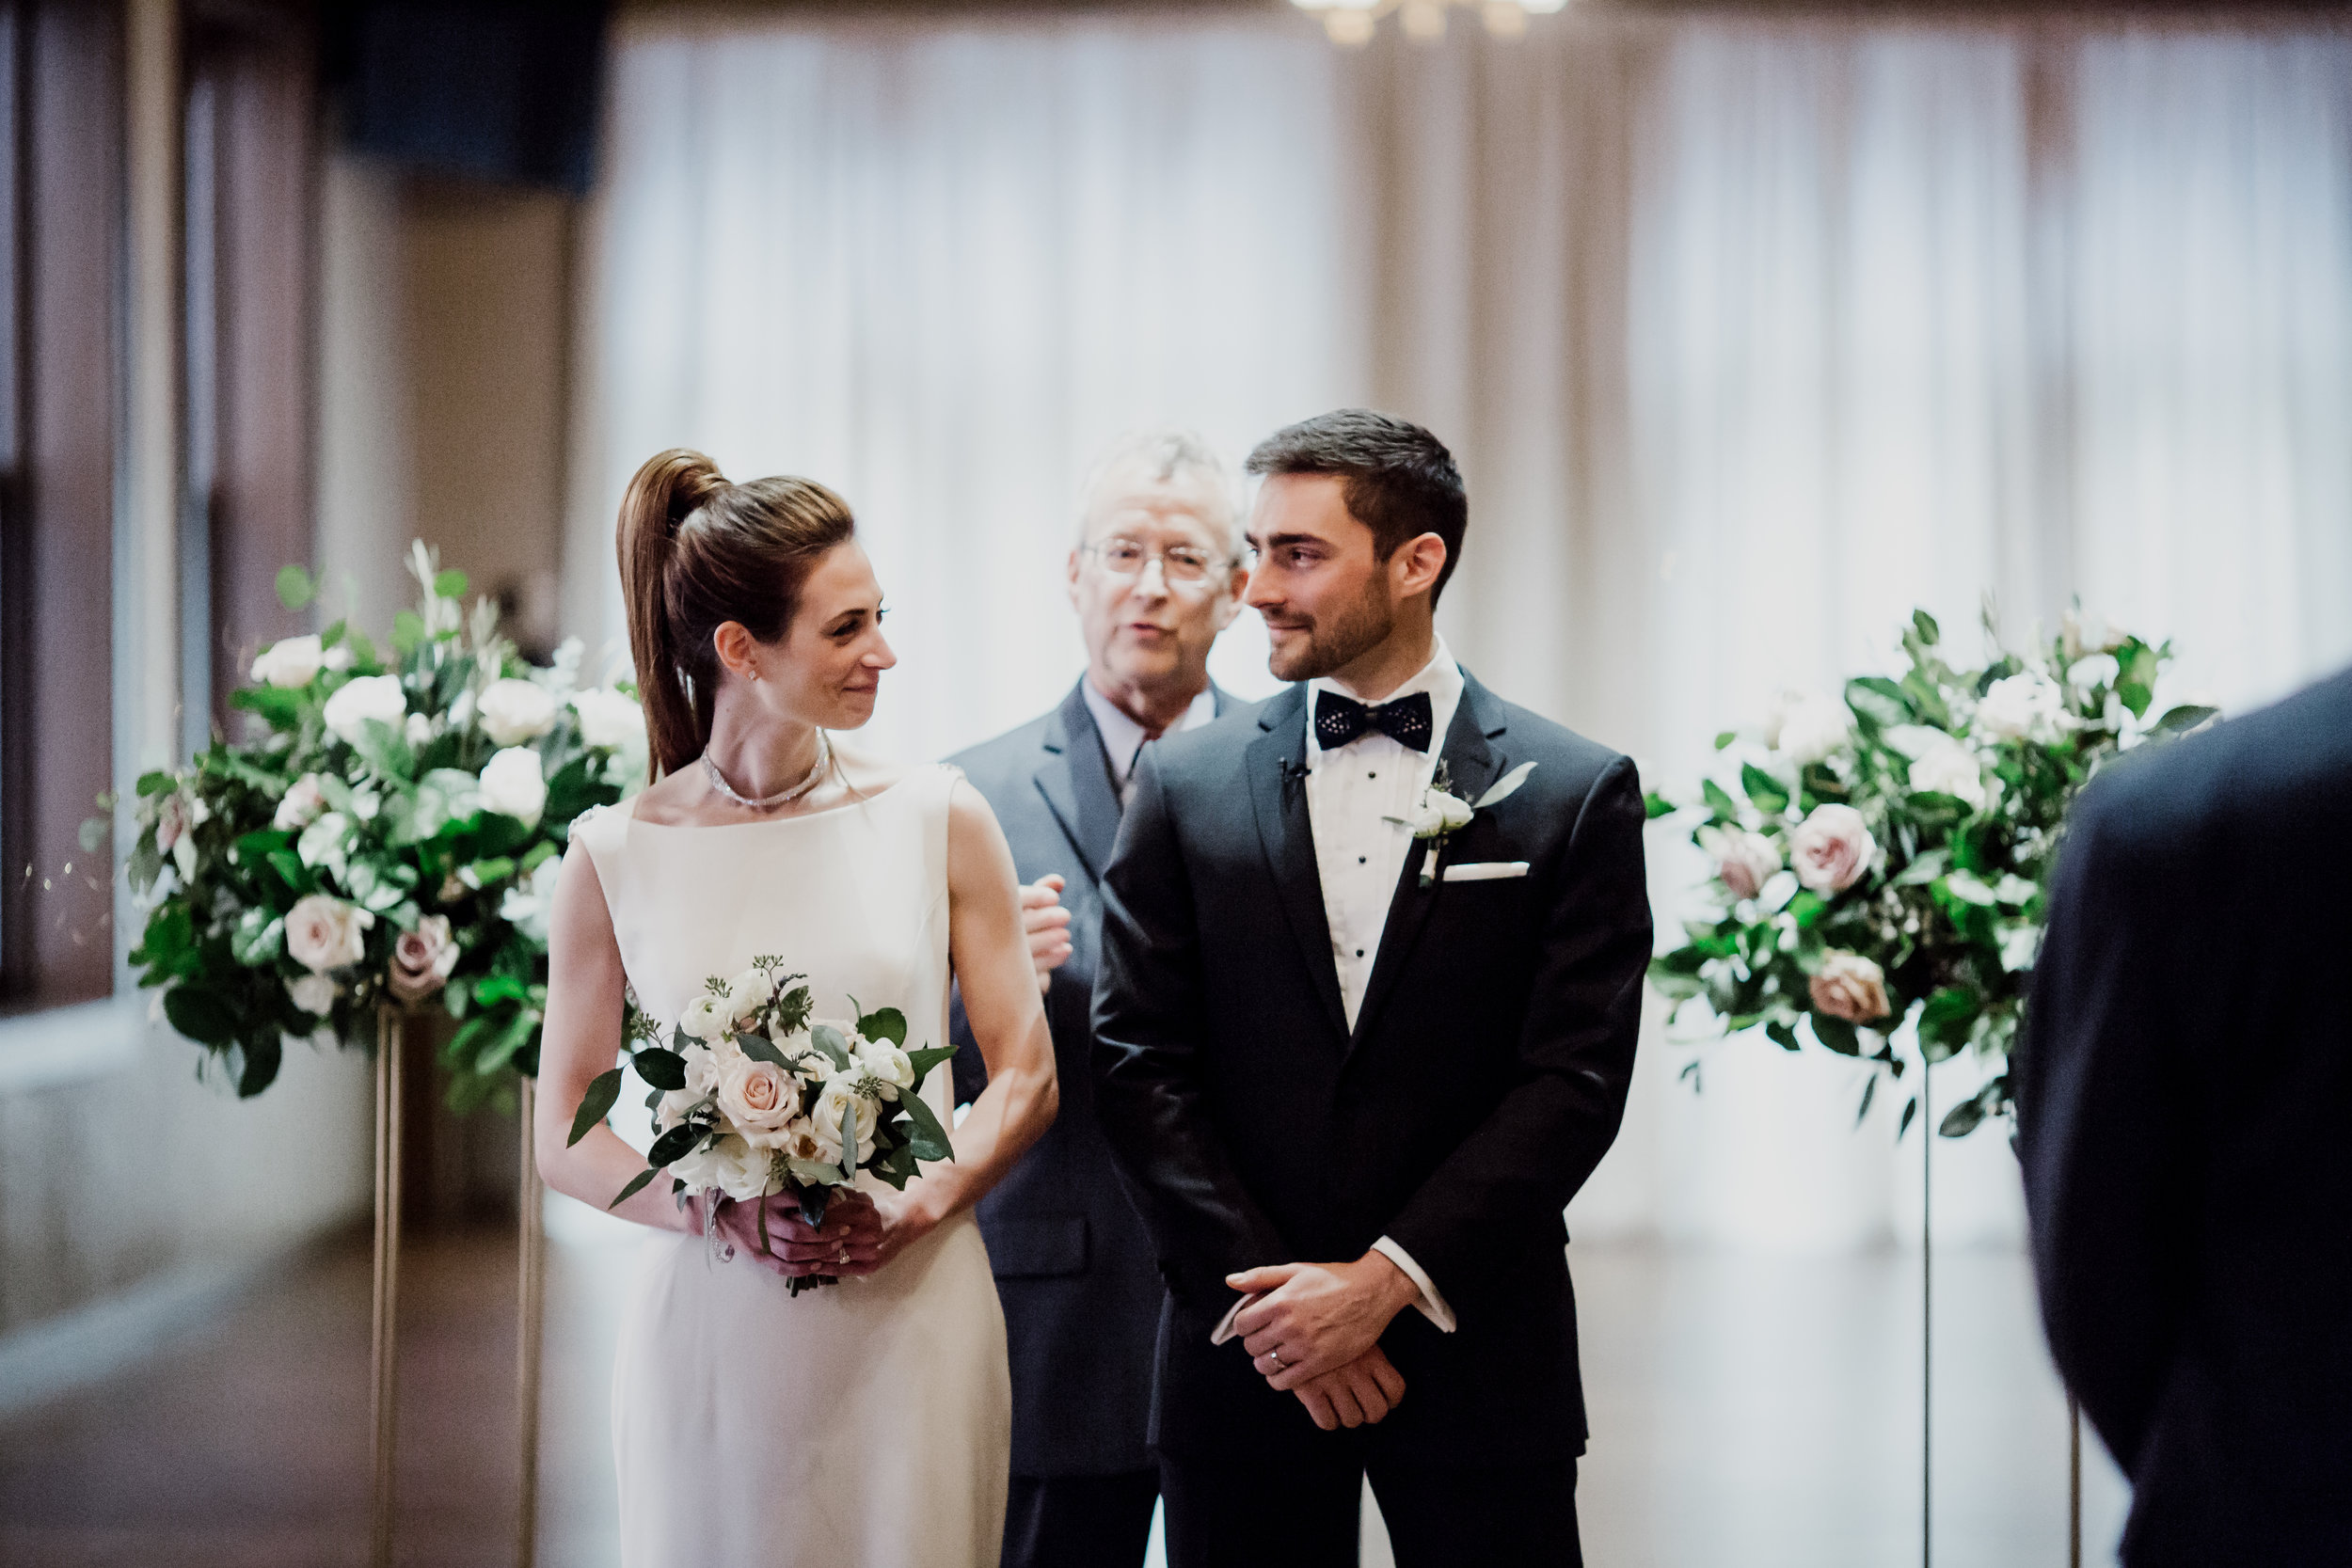 thecarrsphotography_emily_andy_wedding_0268.jpg